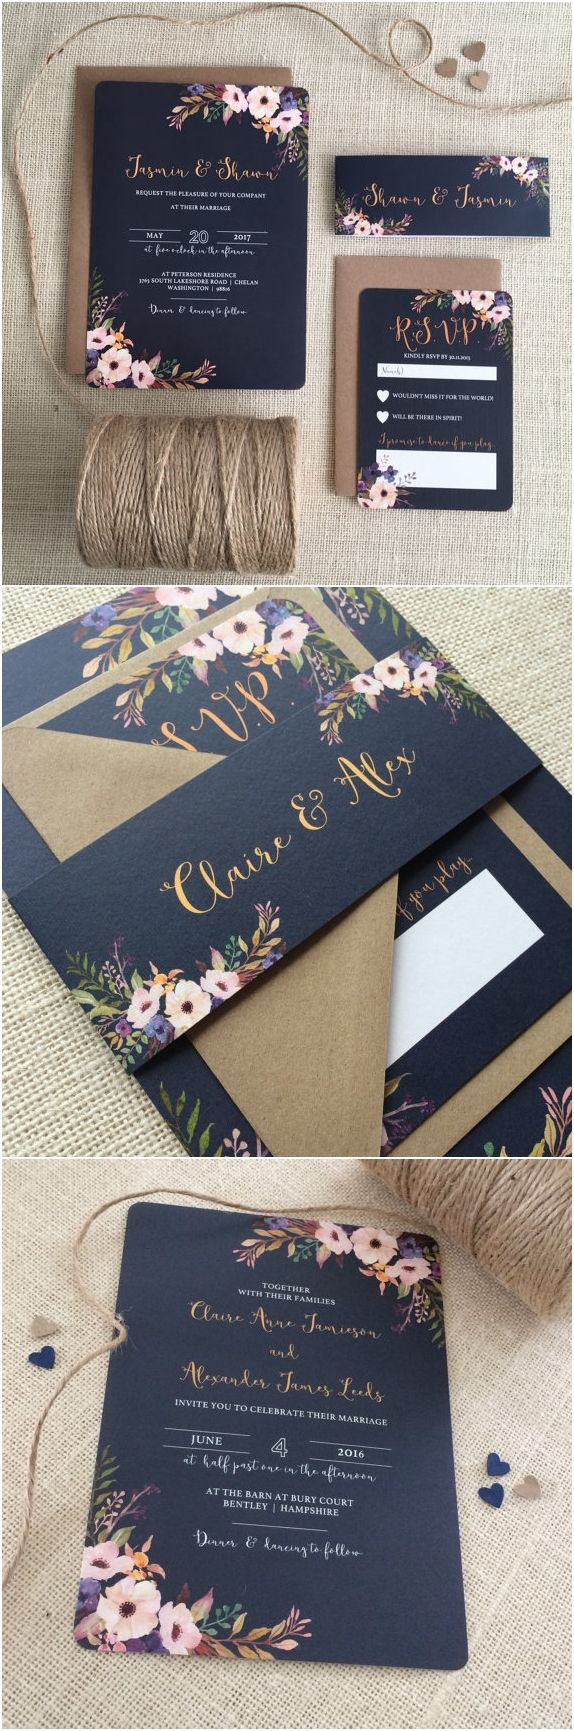 cute wedding card ideas%0A Floral Bloom Wedding Invitation with matching RSVP